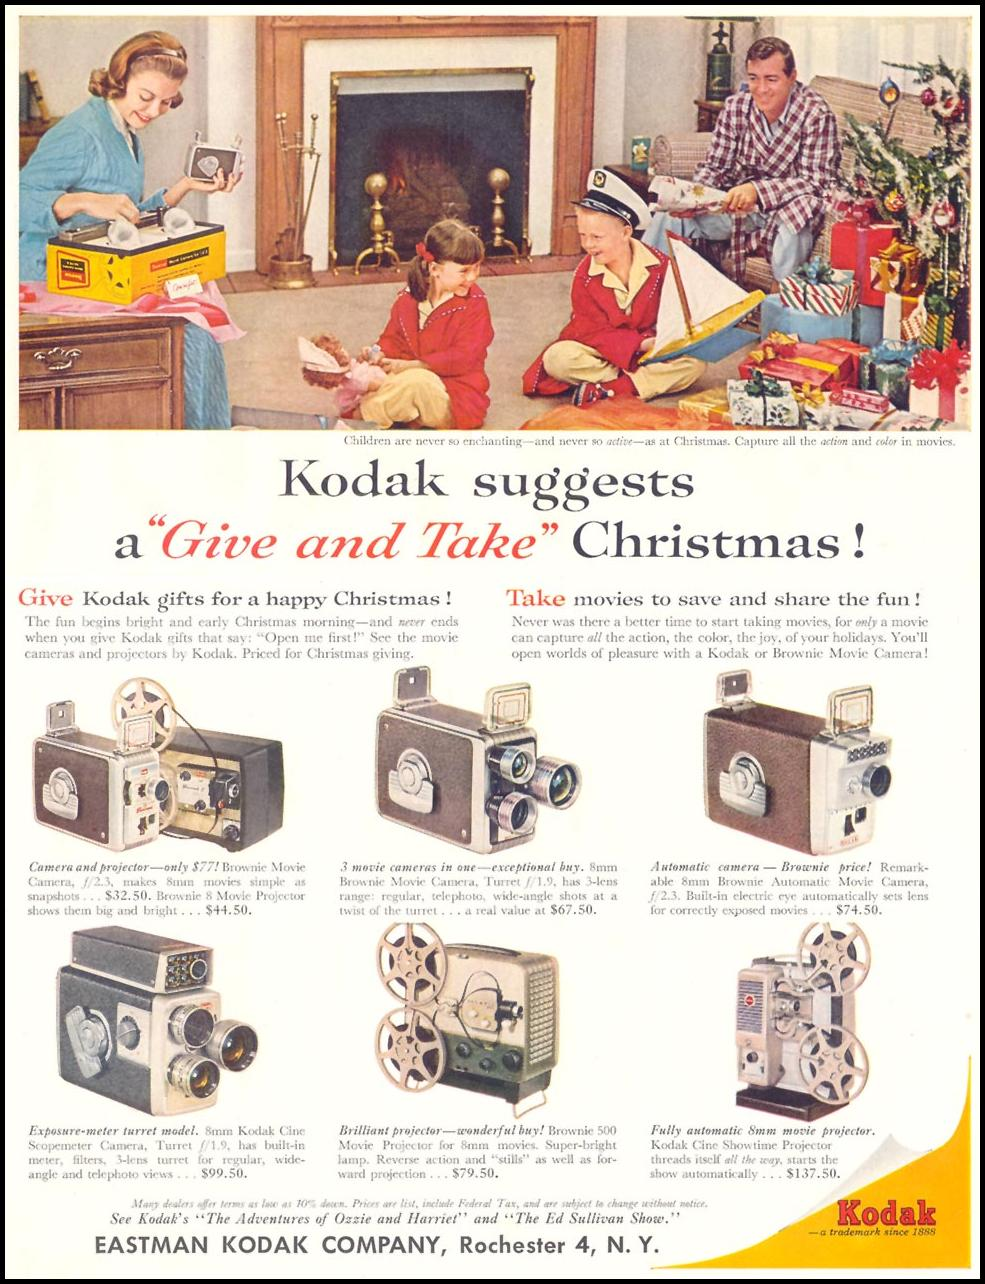 KODAK BROWNIE MOVIE CAMERA LIFE 12/14/1959 p. 83